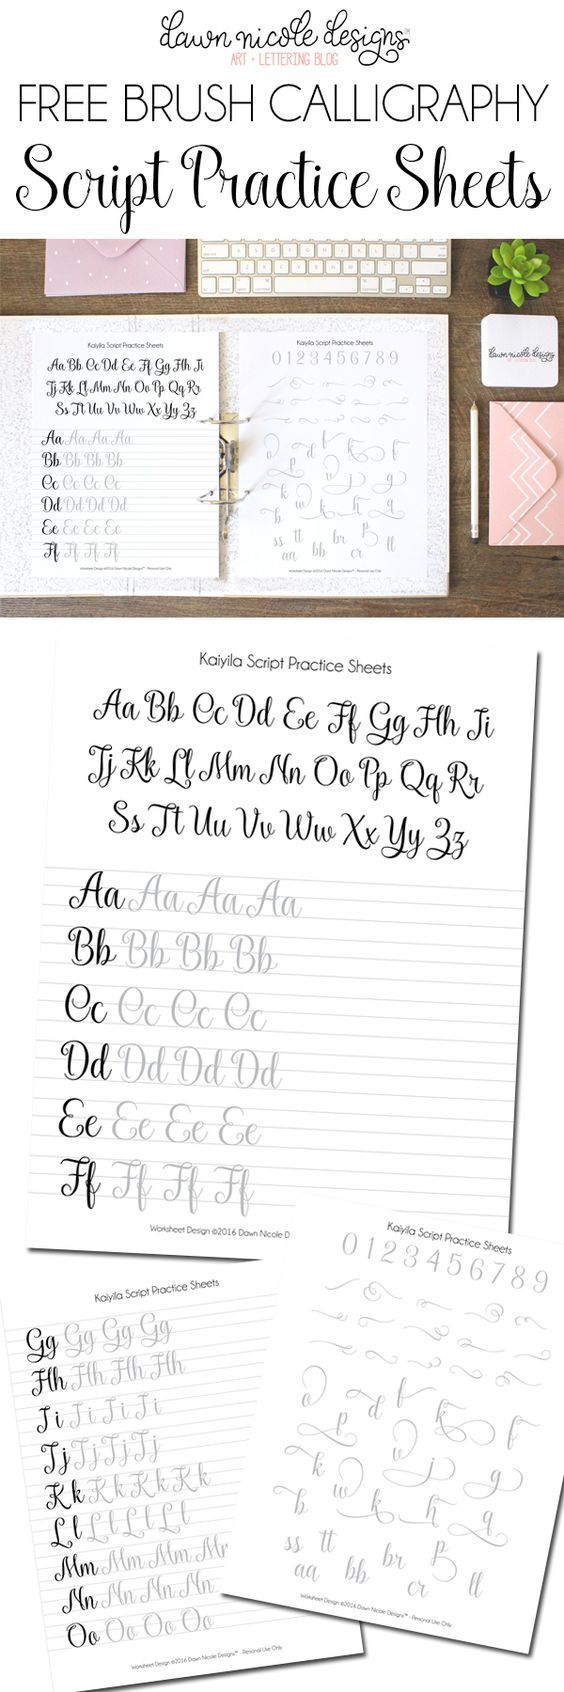 Uncategorized How To Improve Handwriting For Adults Worksheets best 25 penmanship practice ideas on pinterest calligraphy free script brush worksheets dawnnicoledesigns com